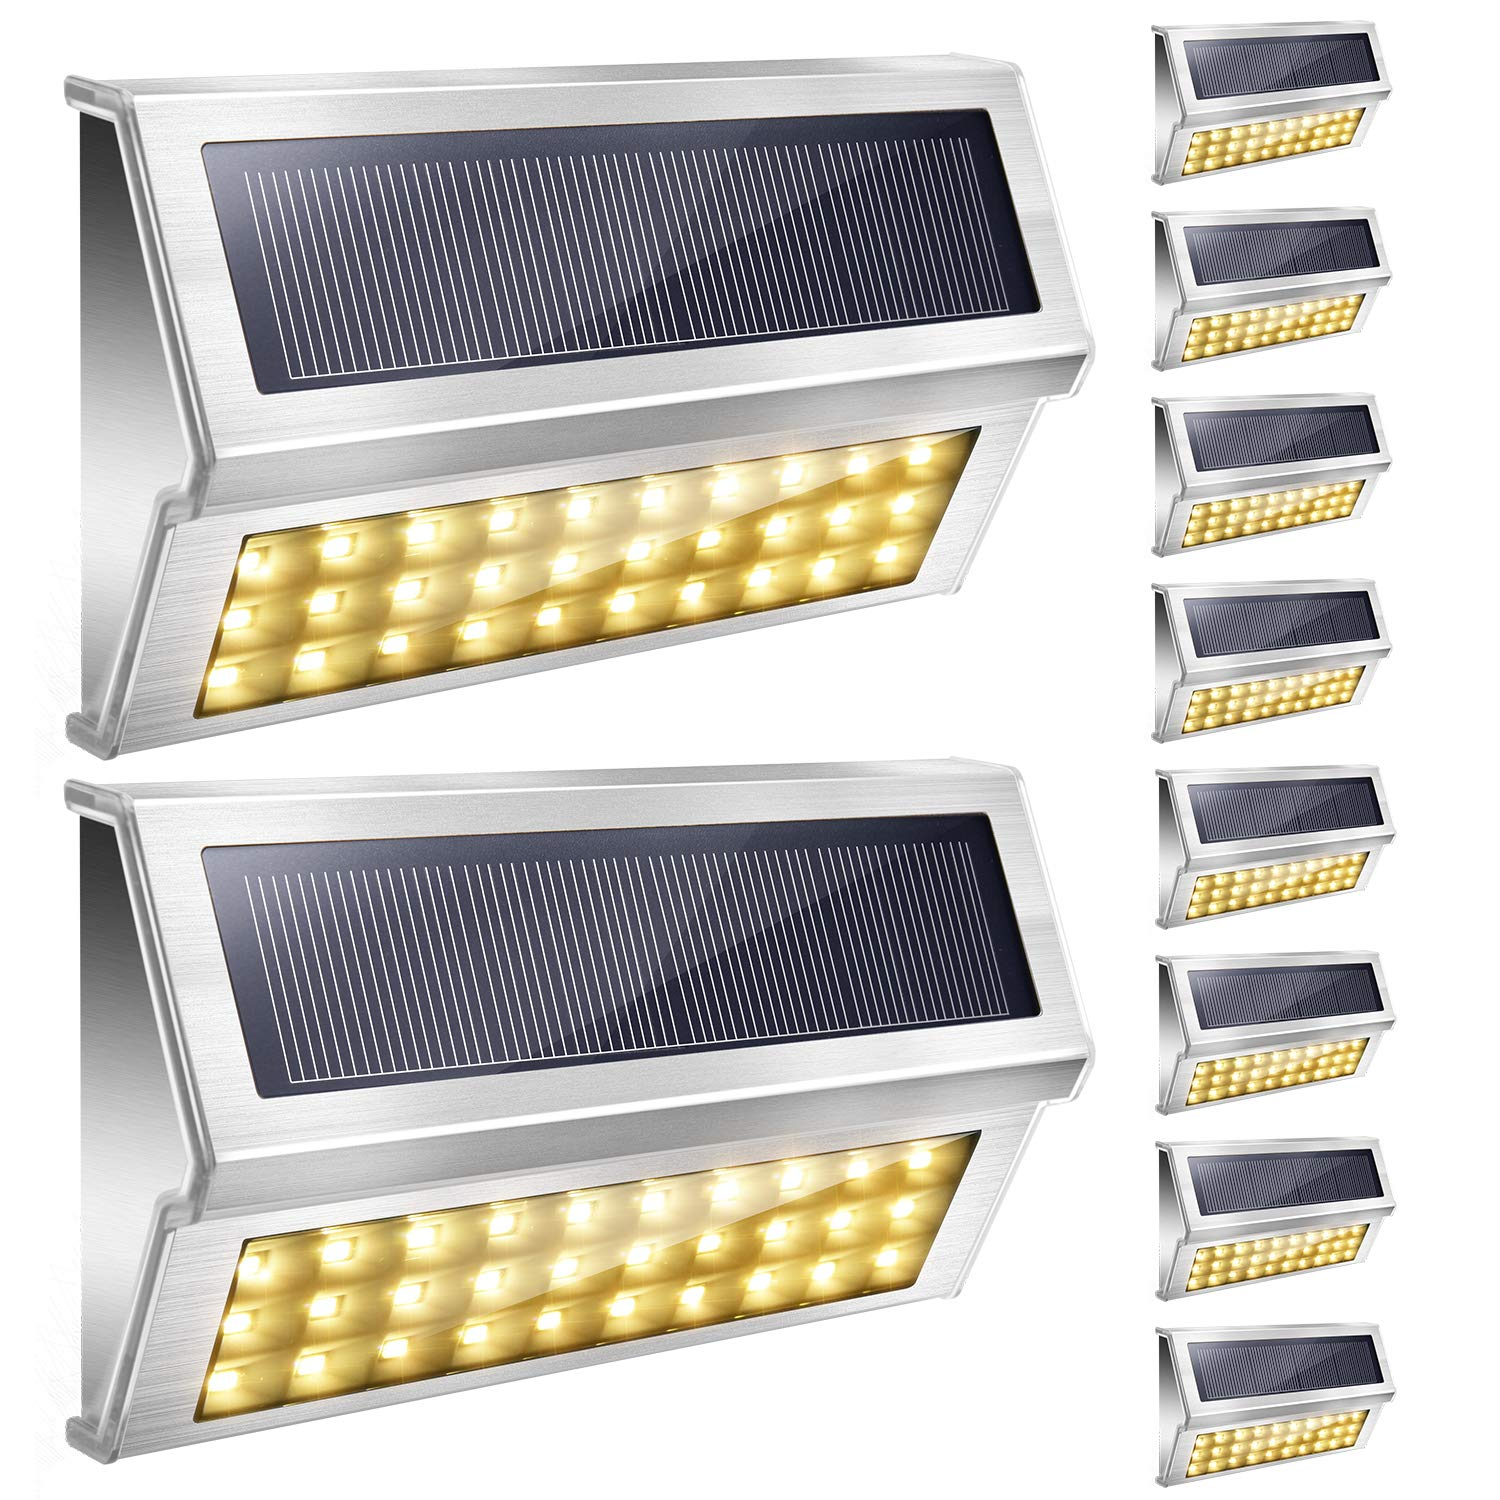 Upgraded 30 LED Solar Step Lights JACKYLED Outdoor Solar Stair Lights Waterproof Solar Powered Deck Lights Stainless Steel 3000K Warm Light Security Lights for Path Fence Patio Wall Dock 10-Pack